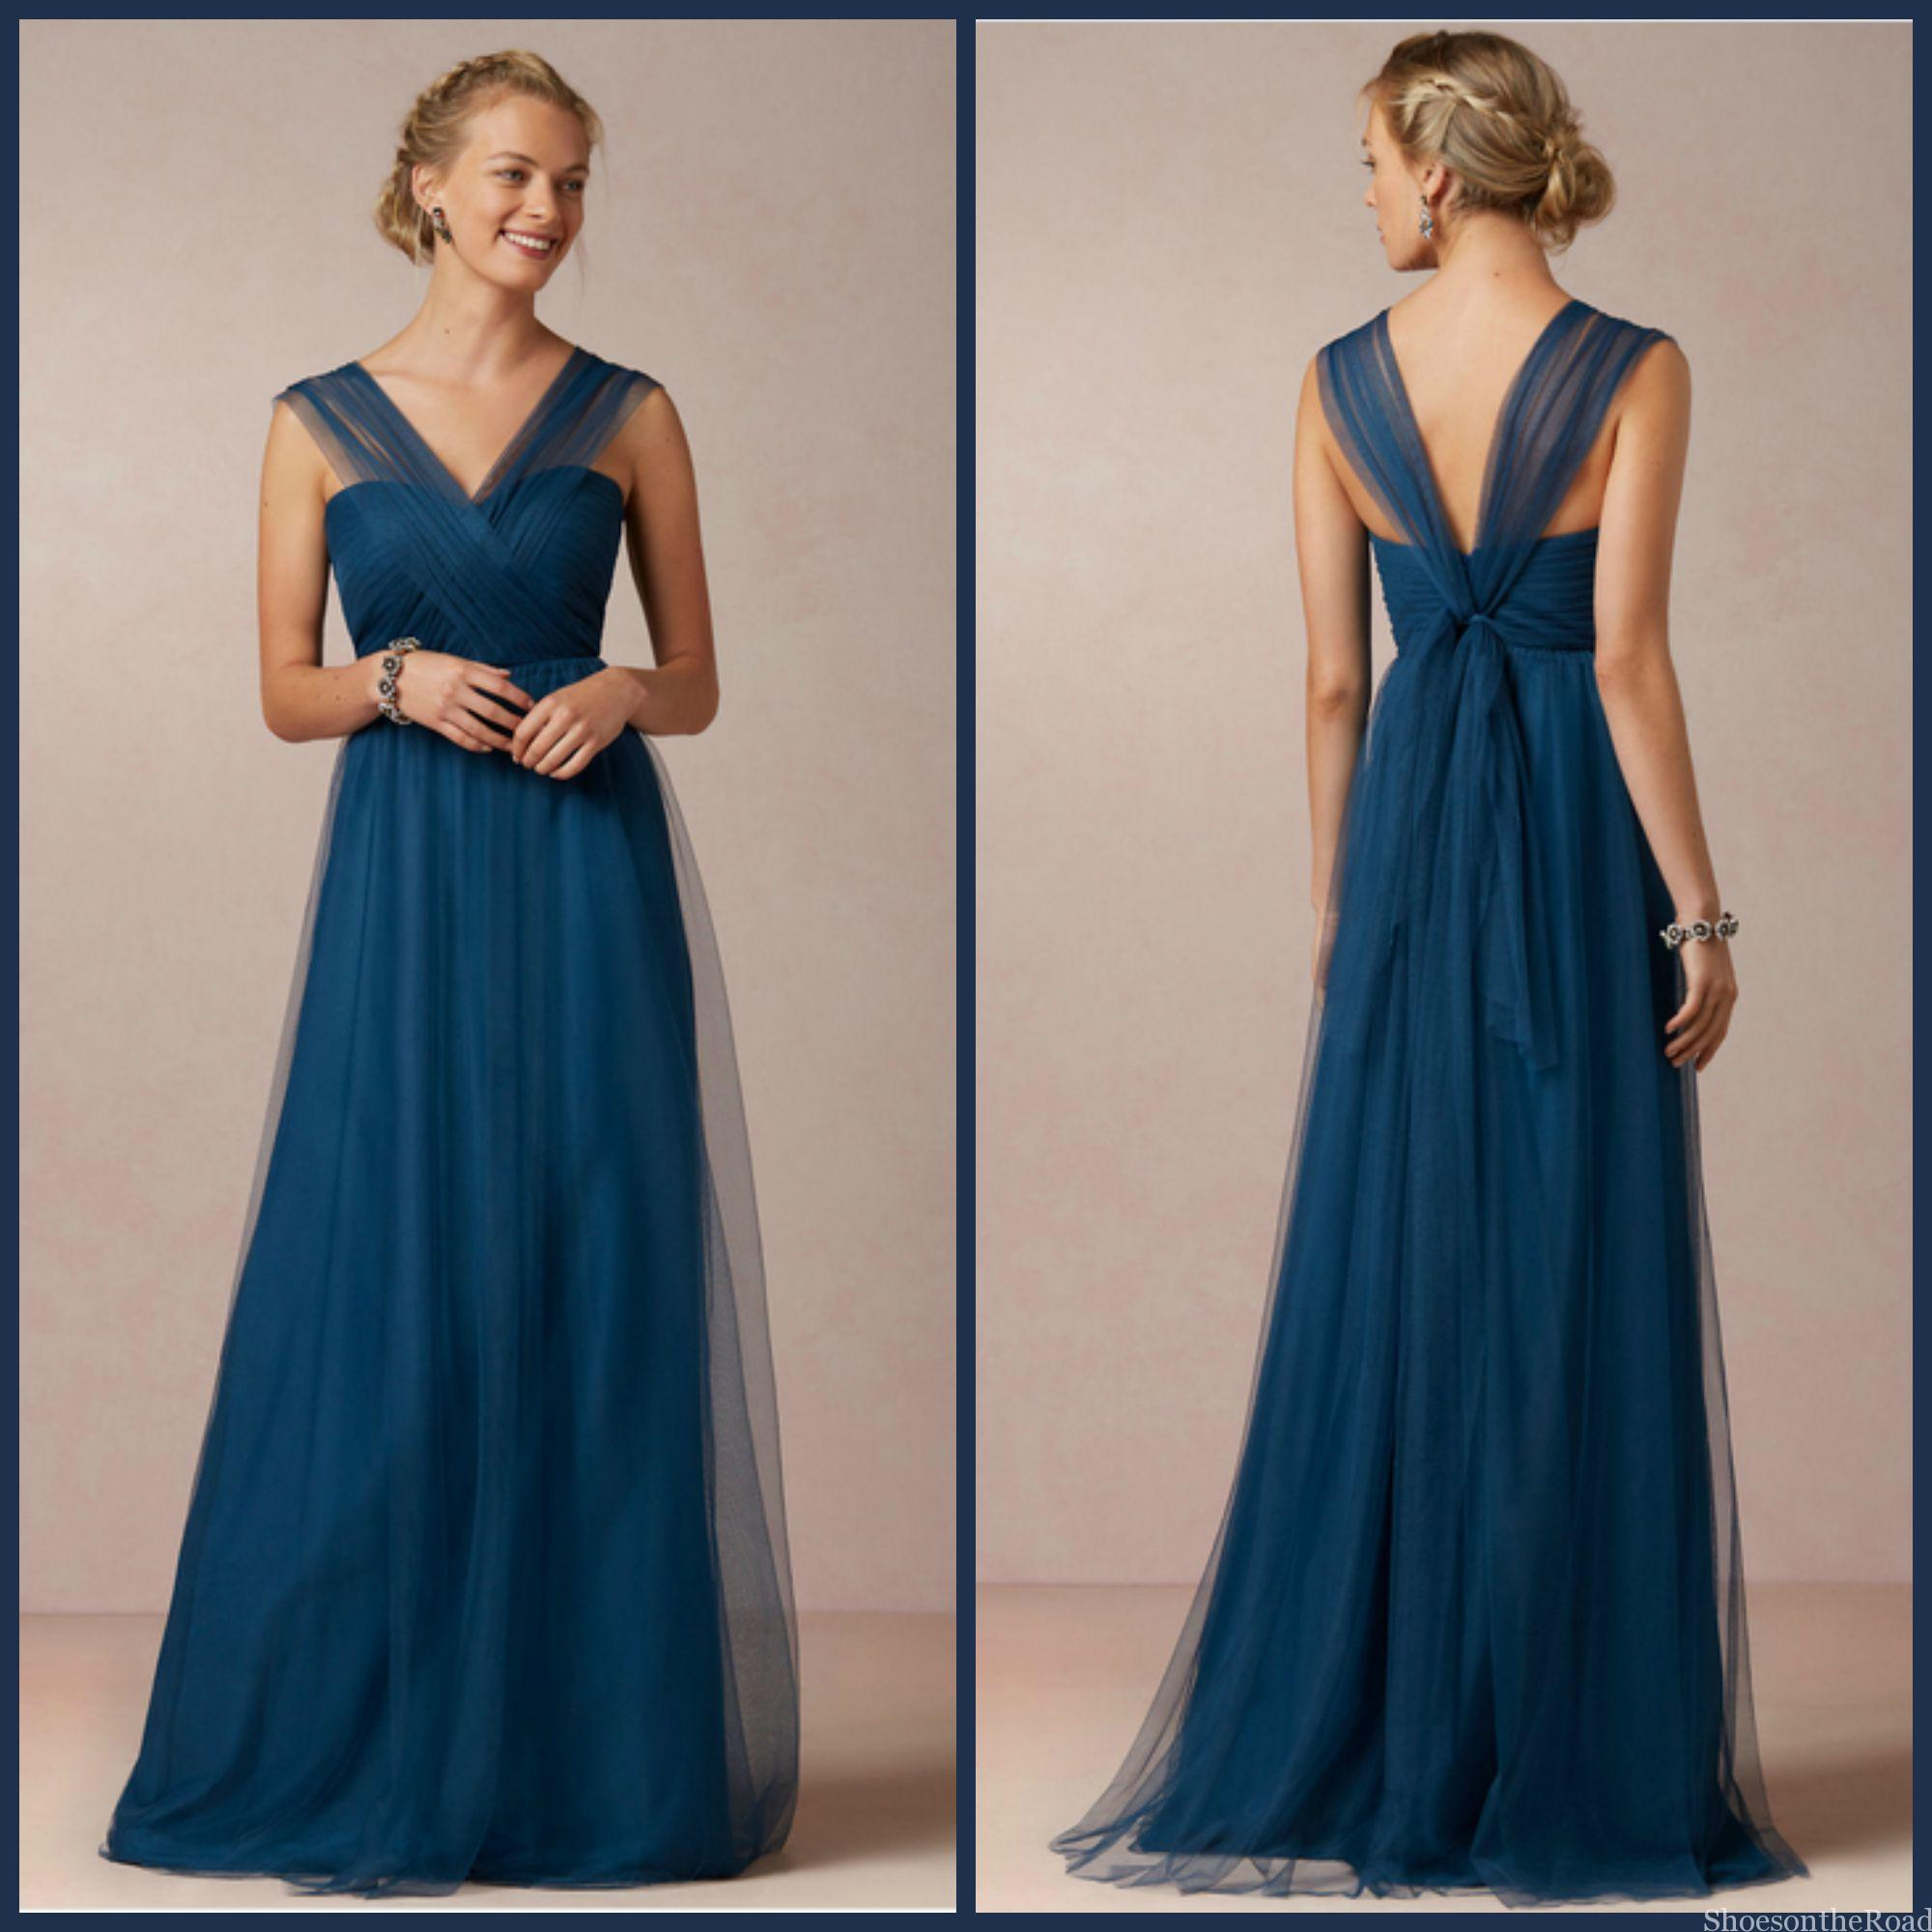 damigella d'onore guida  Zipper V-neck Floor-length Natural Bridesmaid Dresses_shoesontheroad